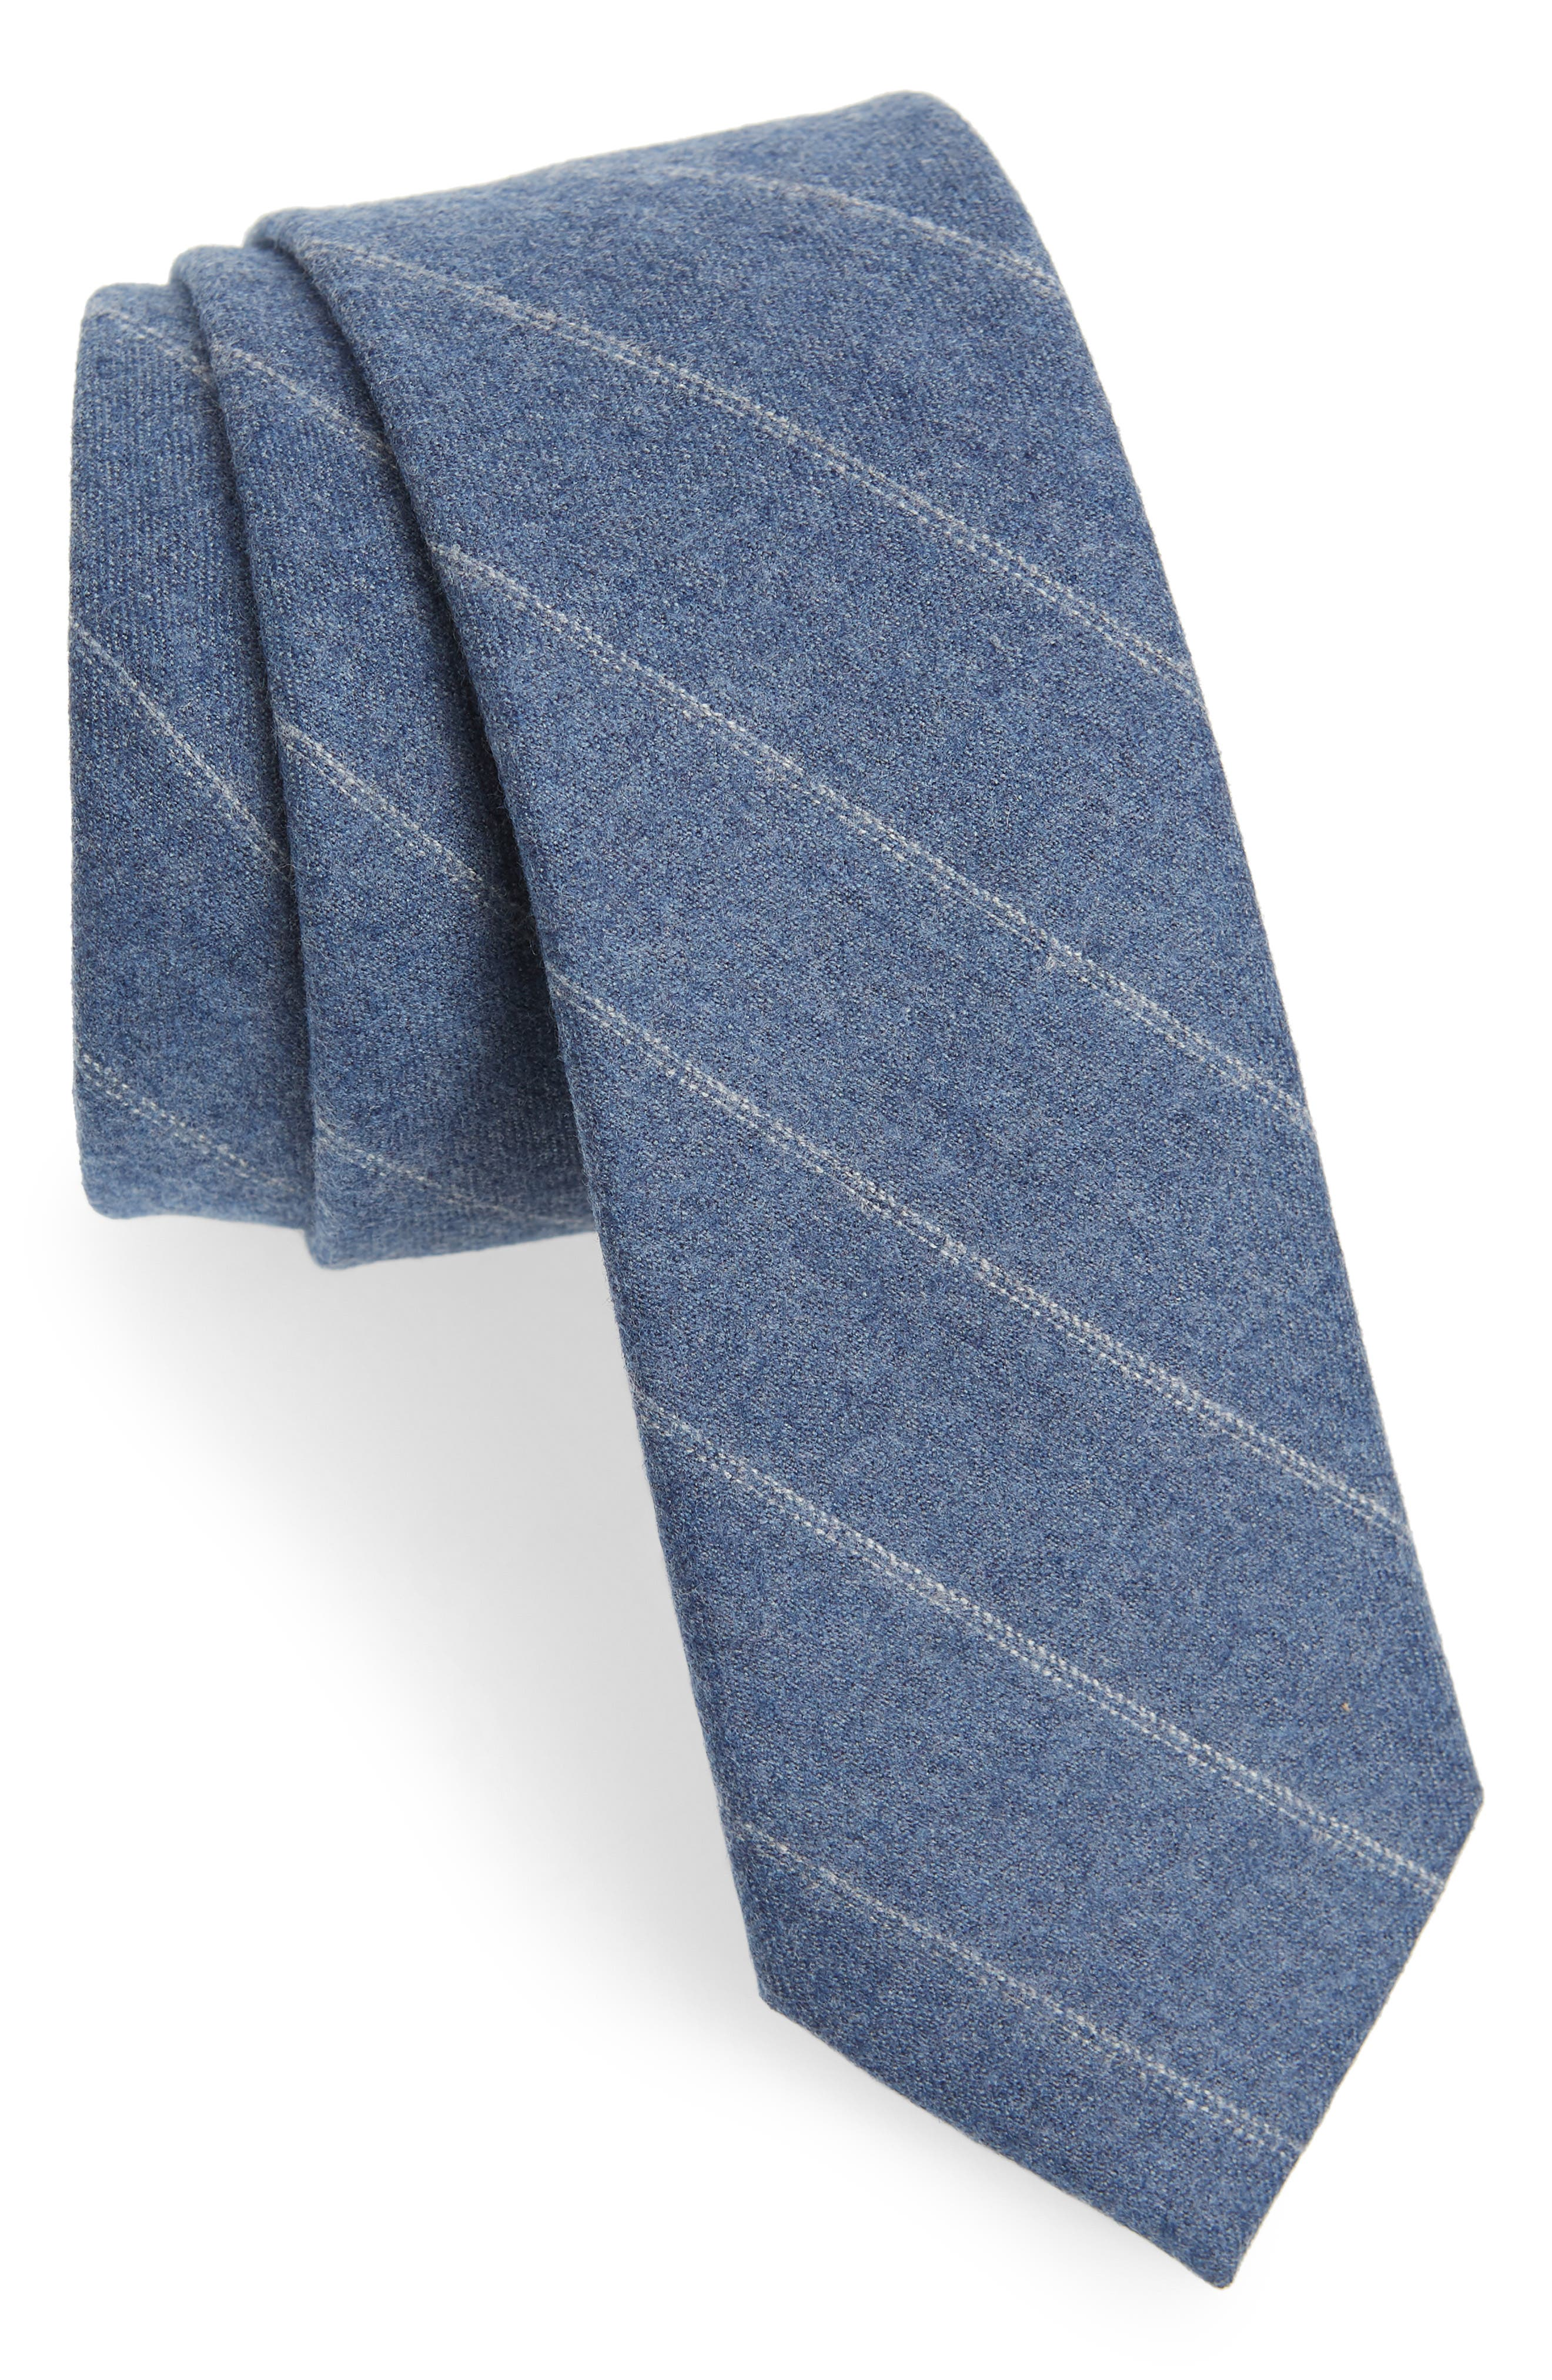 Giallo Stripe Wool Tie,                             Main thumbnail 1, color,                             LIGHT BLUE